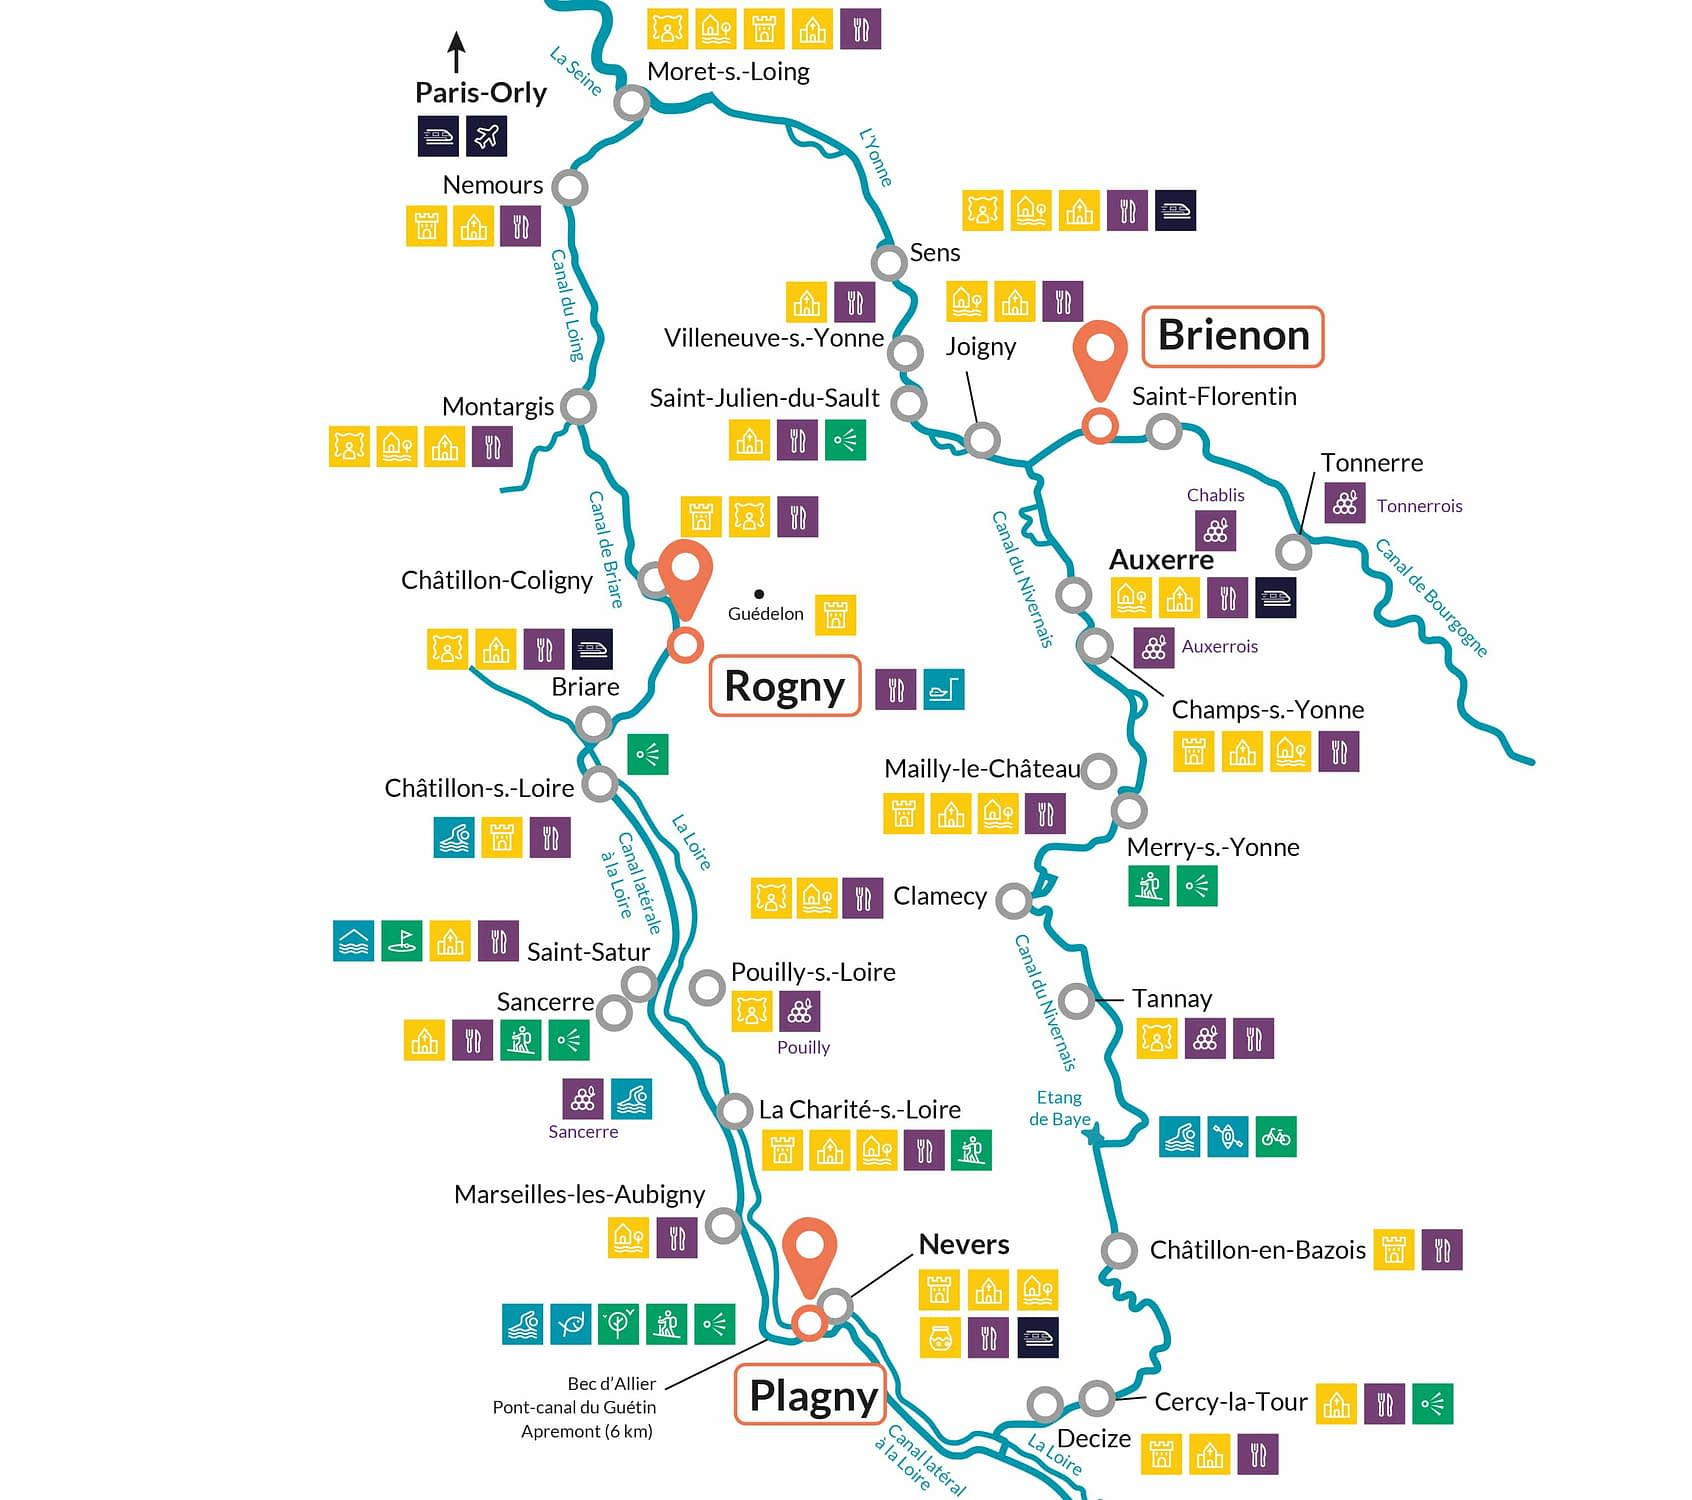 Boating holidays map